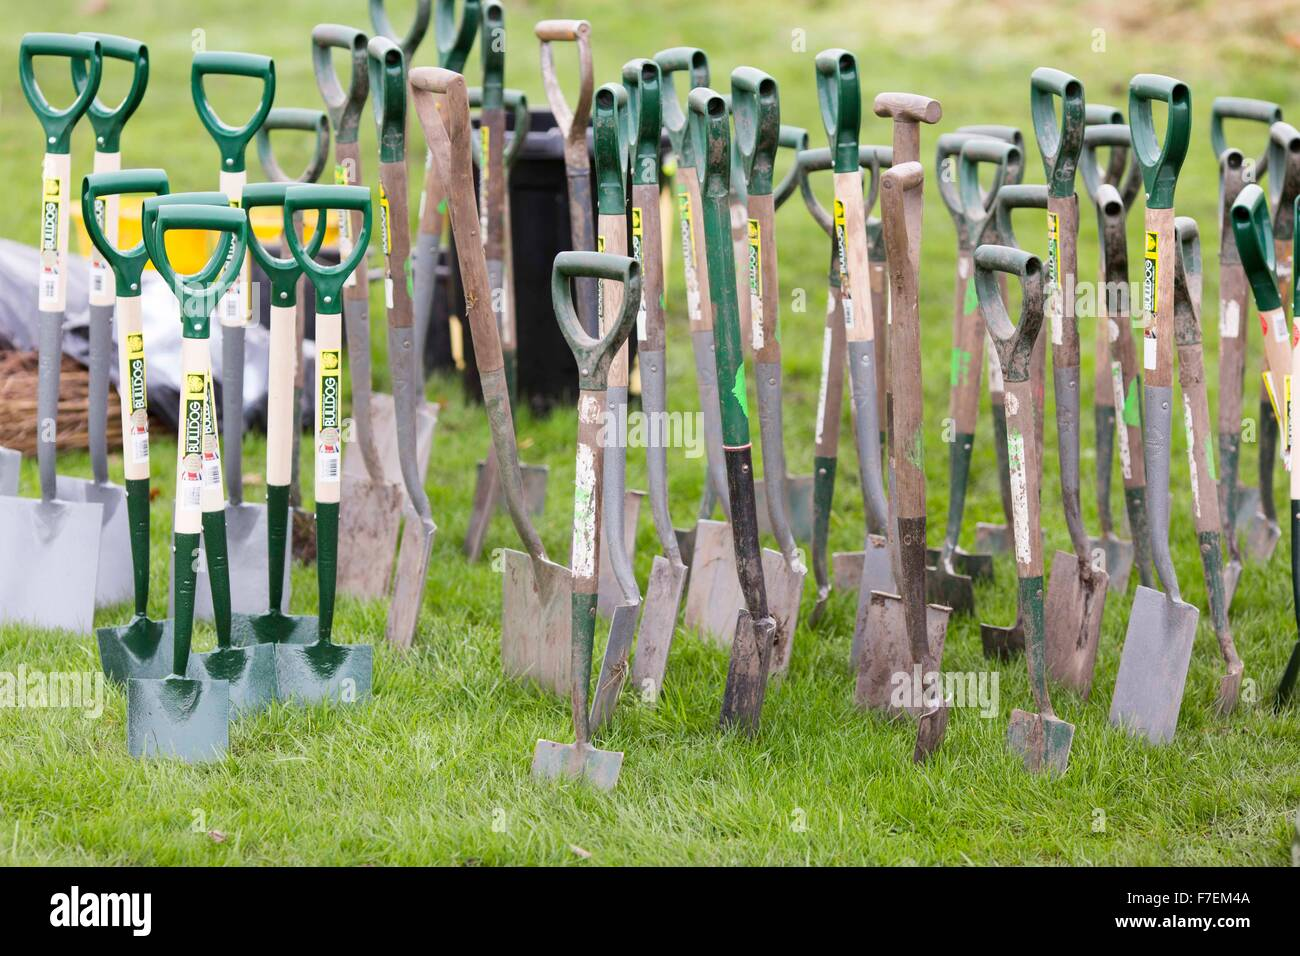 gardening spades in the ground - Stock Image